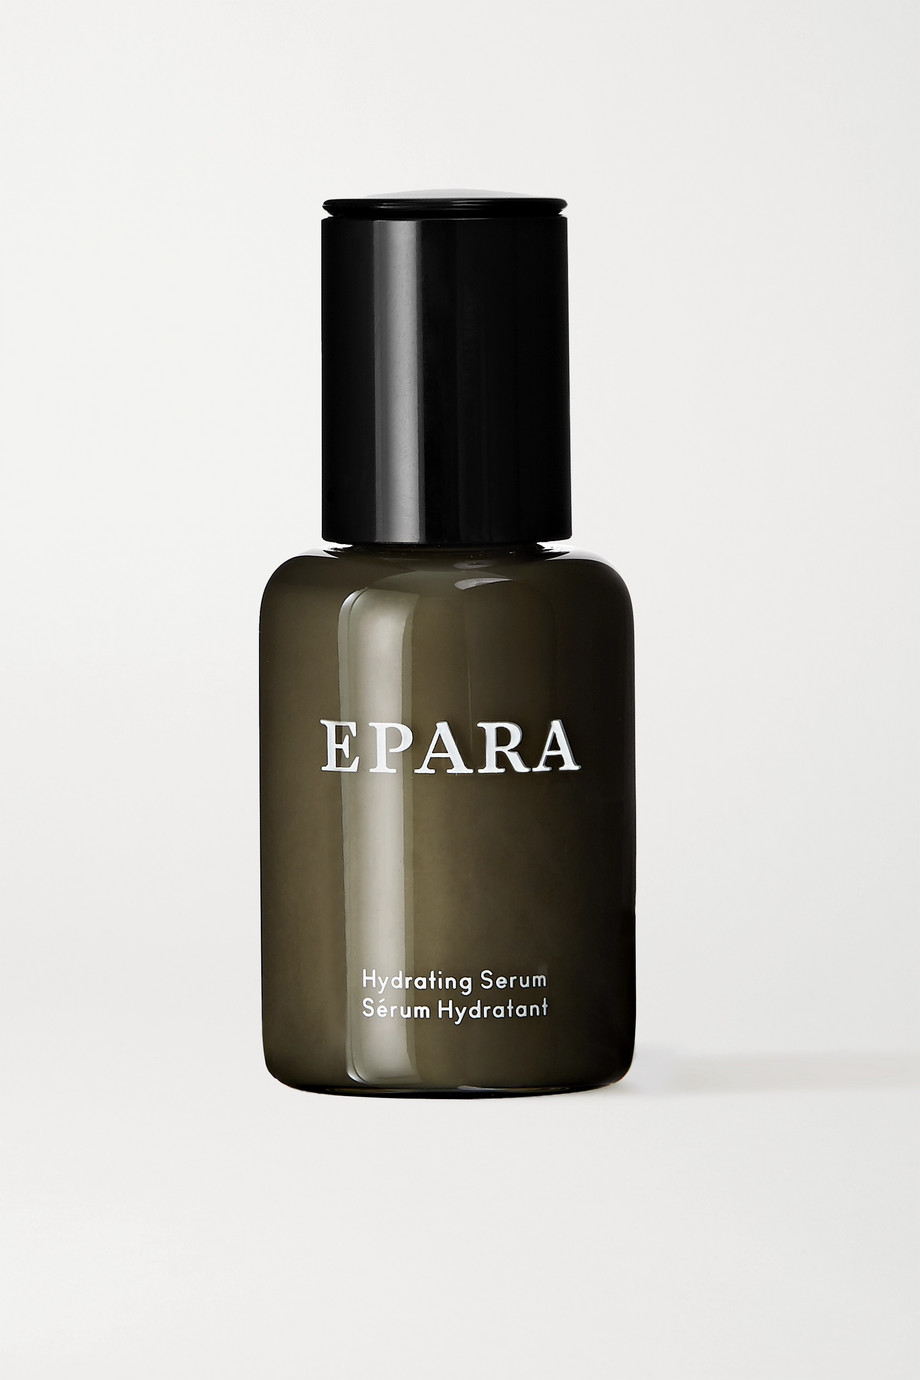 Epara Hydrating Serum, 30ml